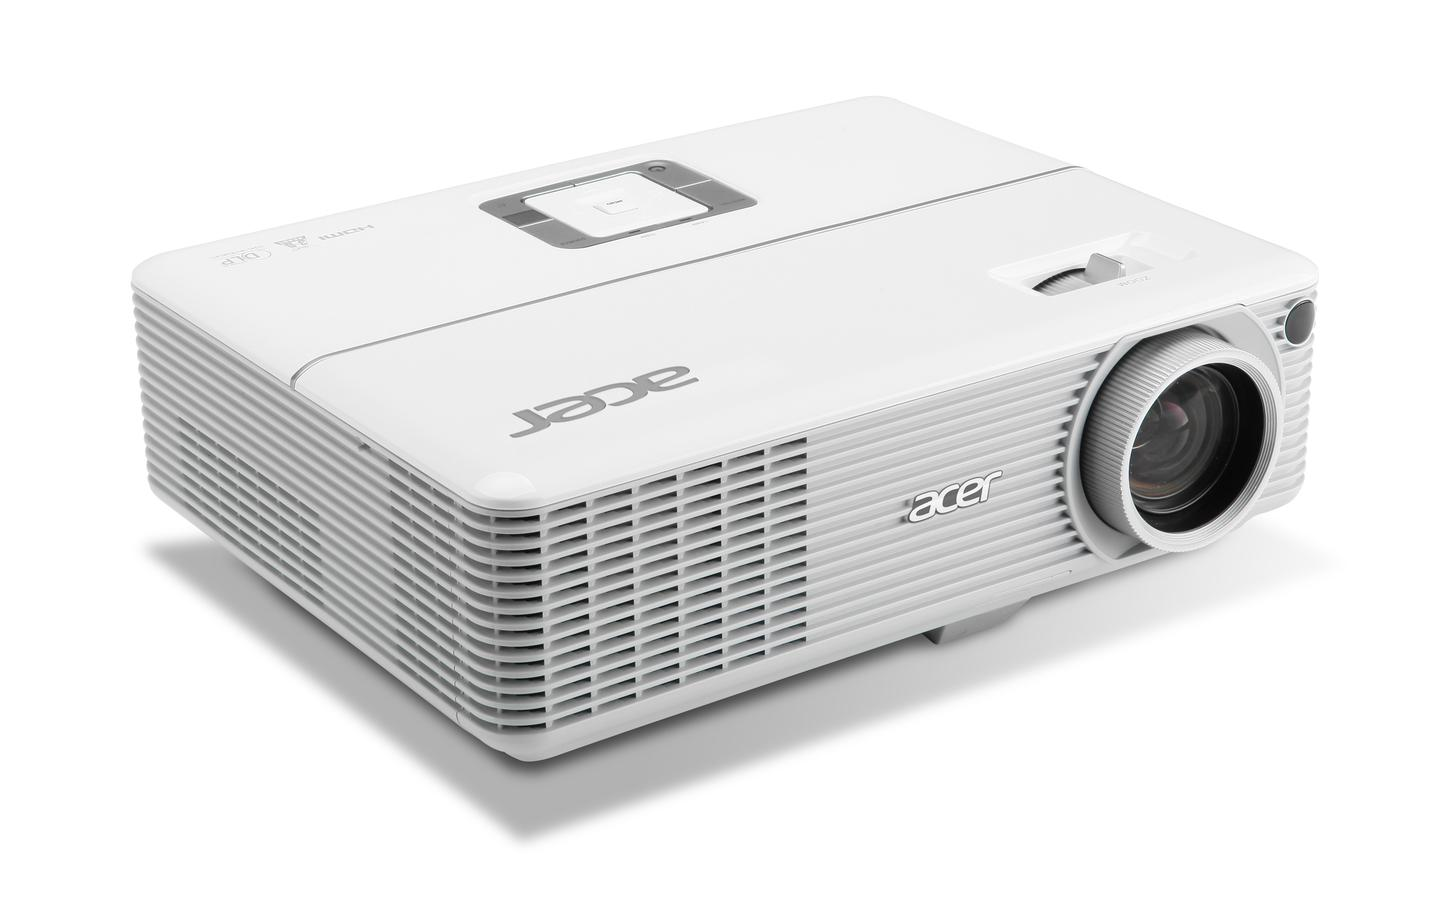 Acer's H6500 projector features a brightness of 2,100 ANSI lumens